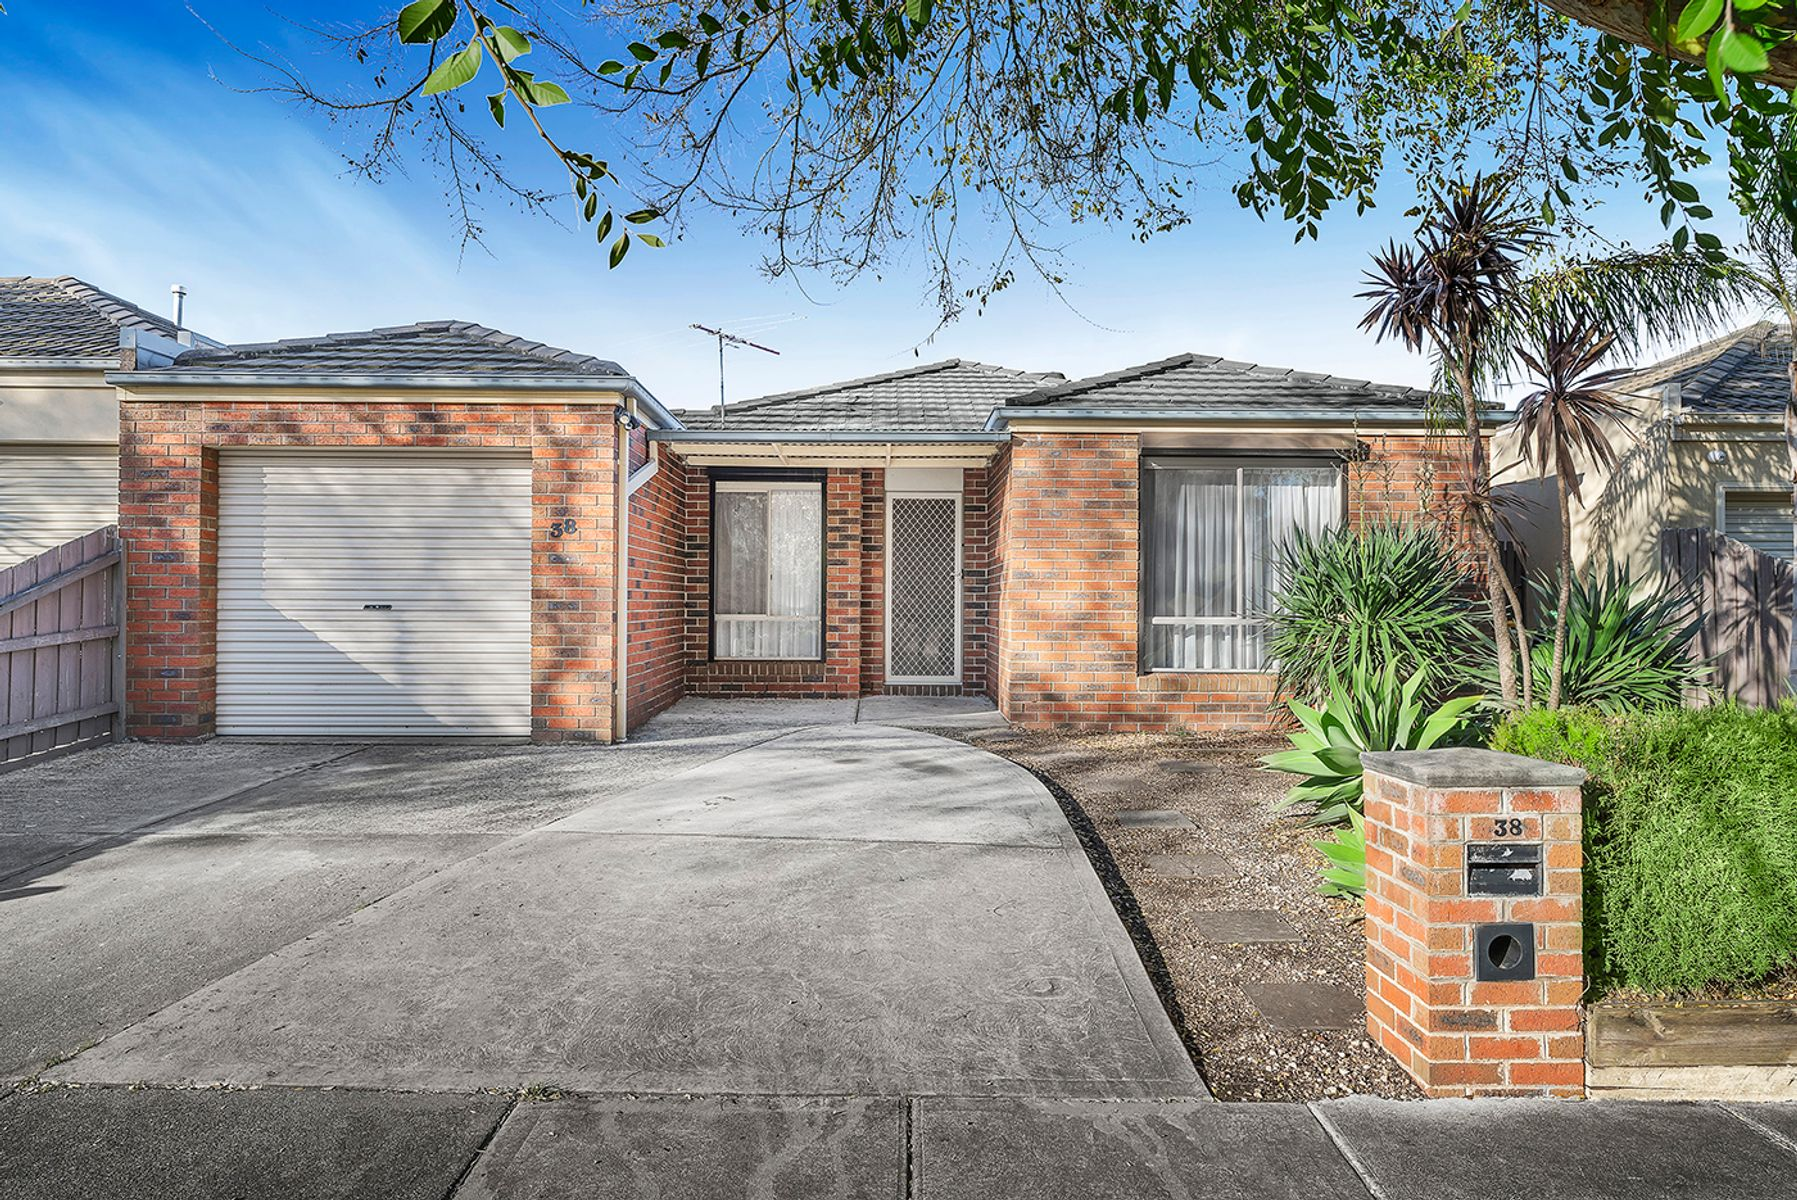 38 Samuel Court, Bundoora, VIC 3083